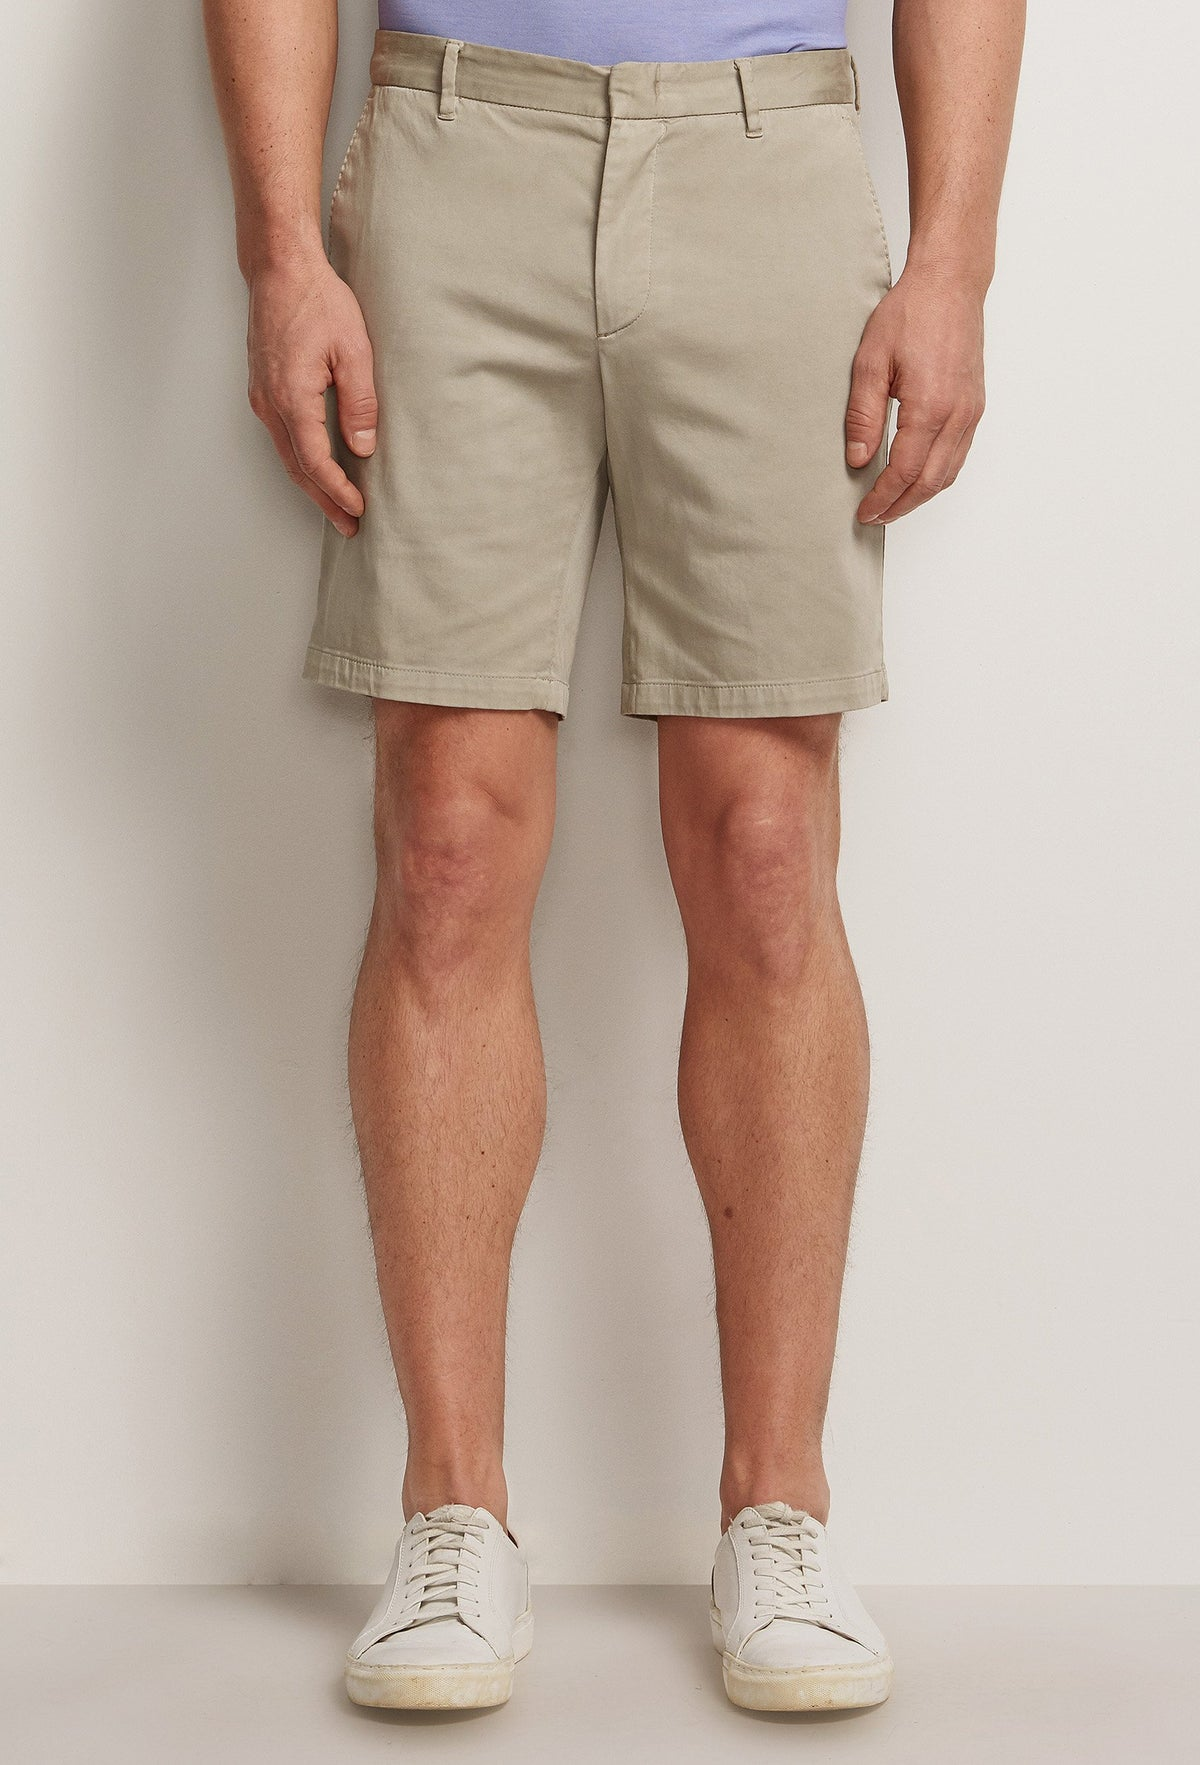 men's lightweight khaki cotton shorts with pockets